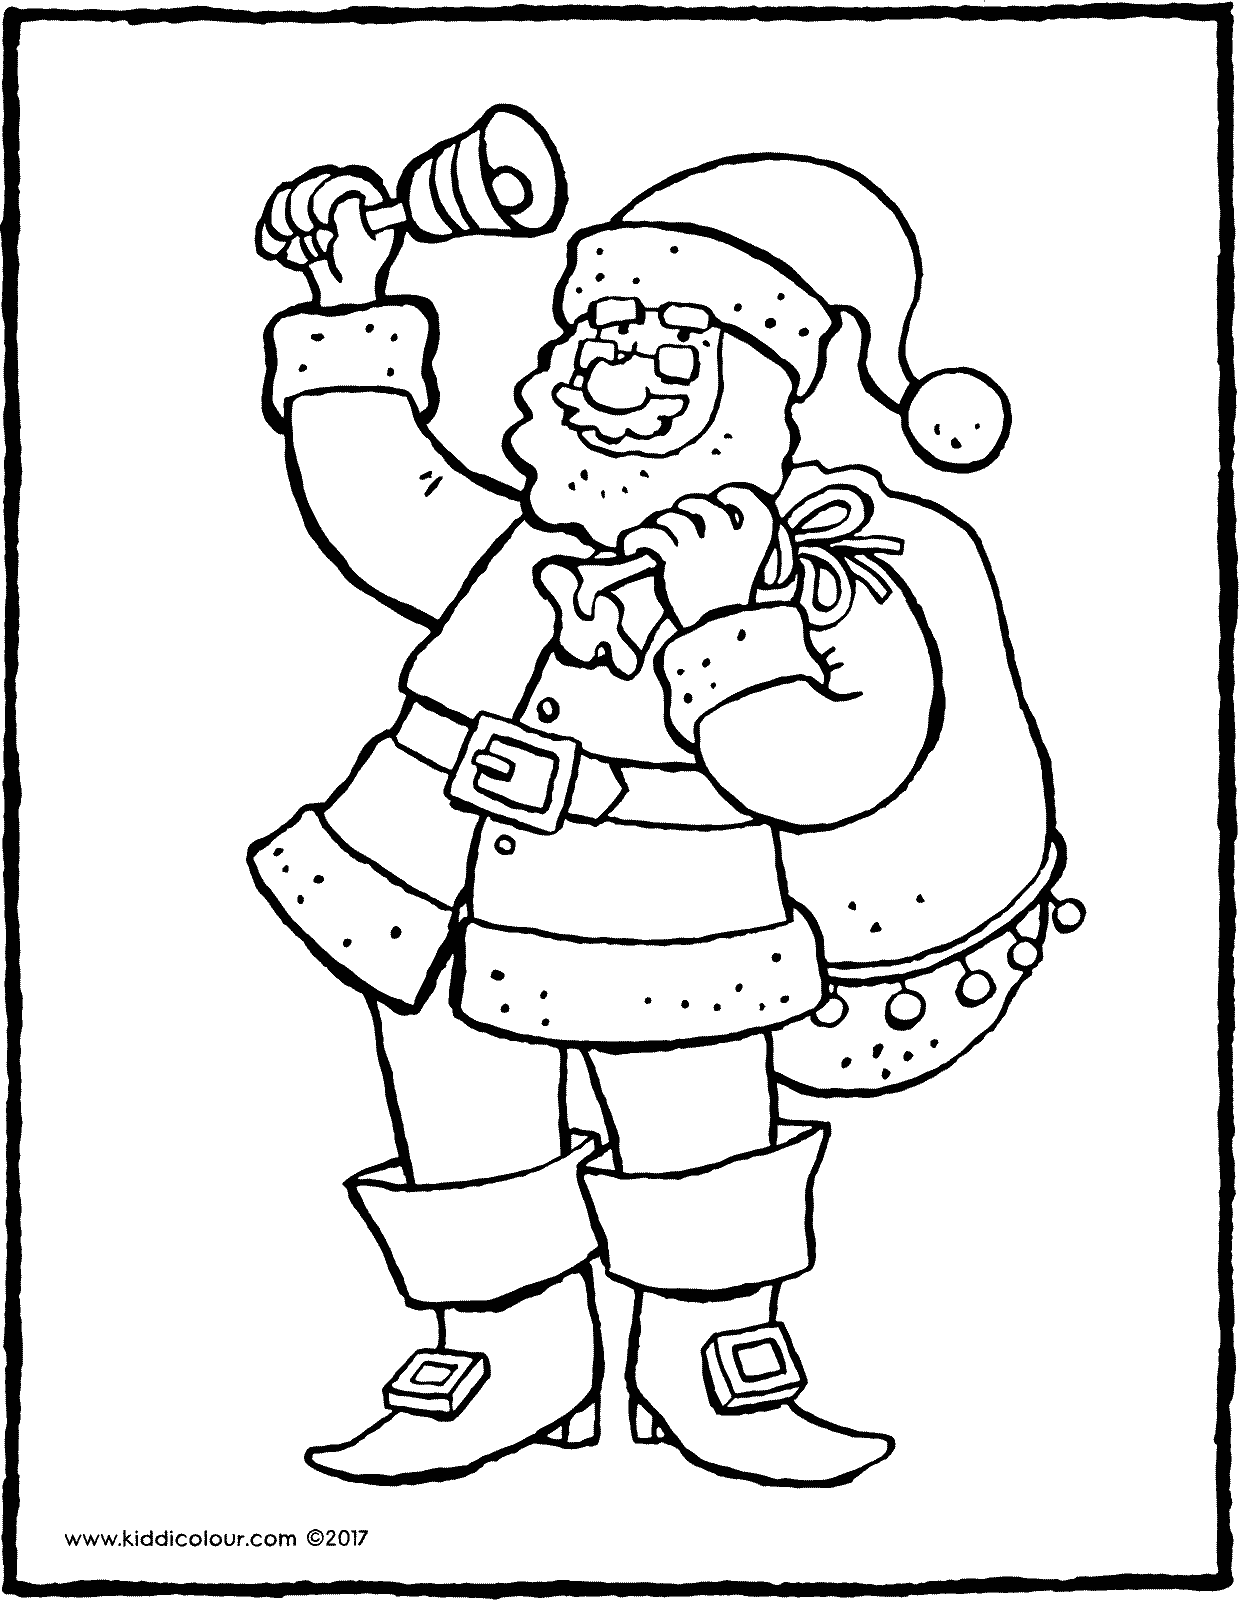 Father Christmas Colouring Page - Colouring Pages for Kids | 1600x1240